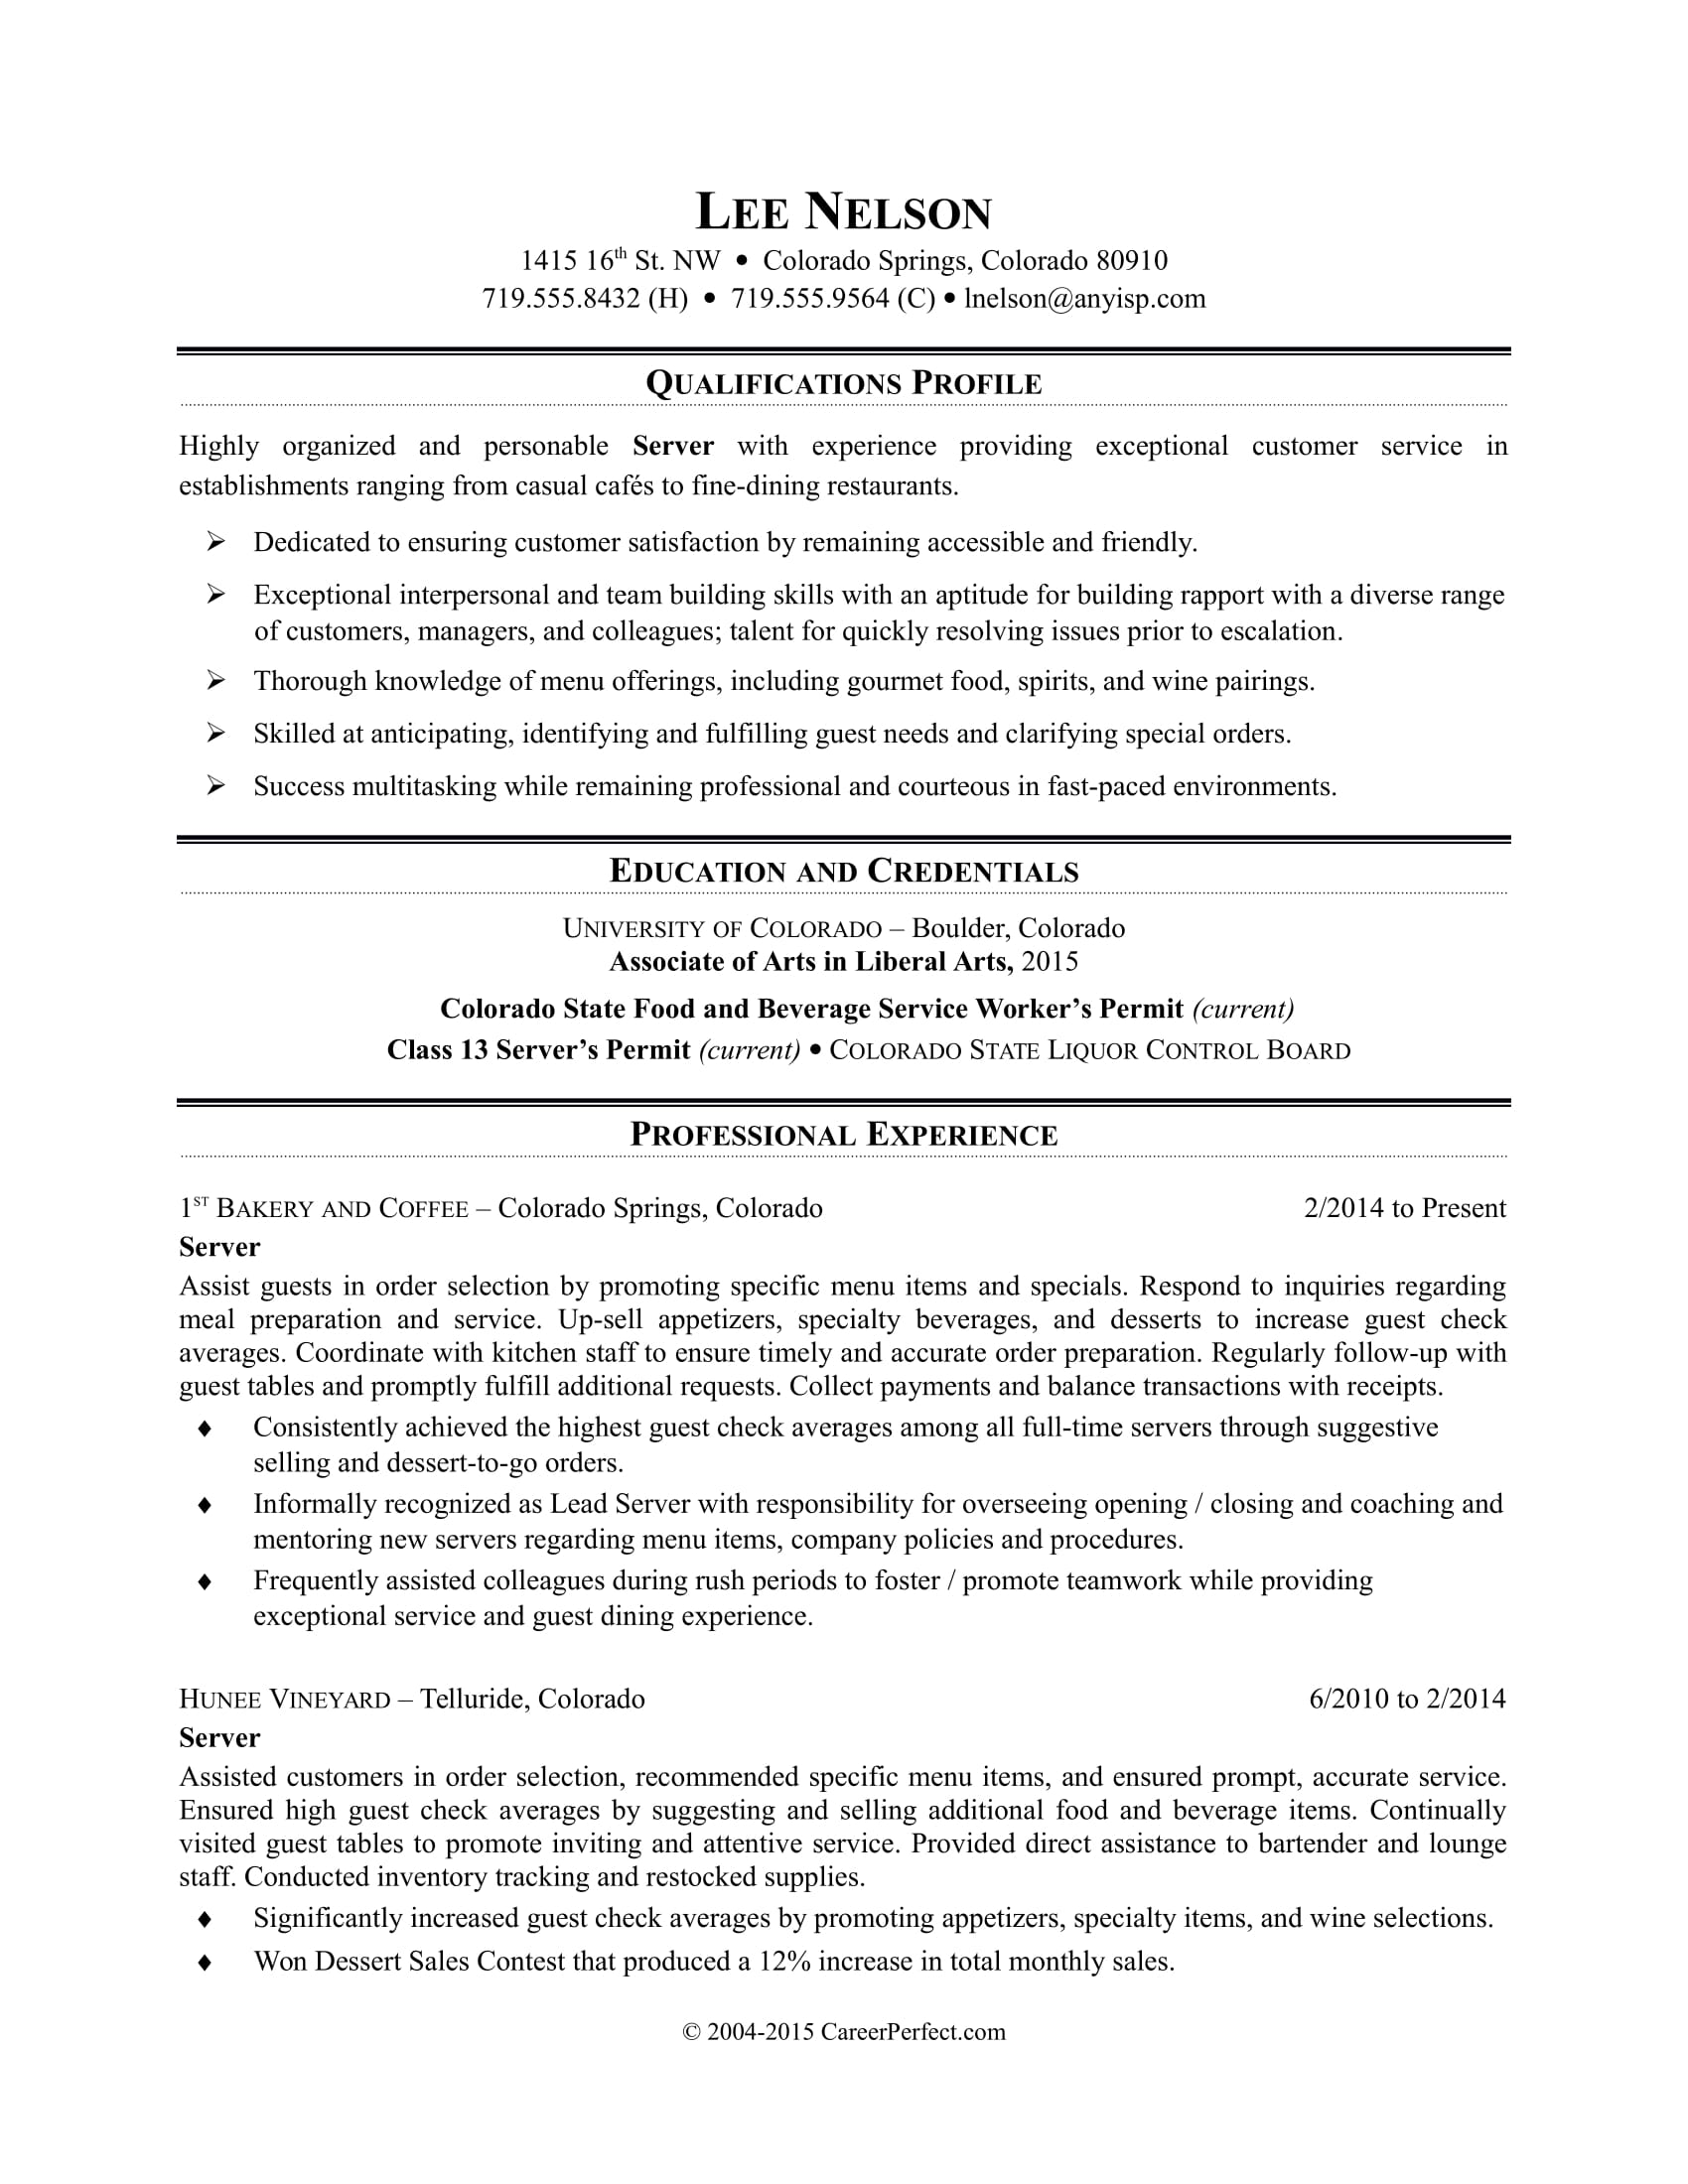 Sample Resume For A Restaurant Server  Skills And Abilities For Resume Examples